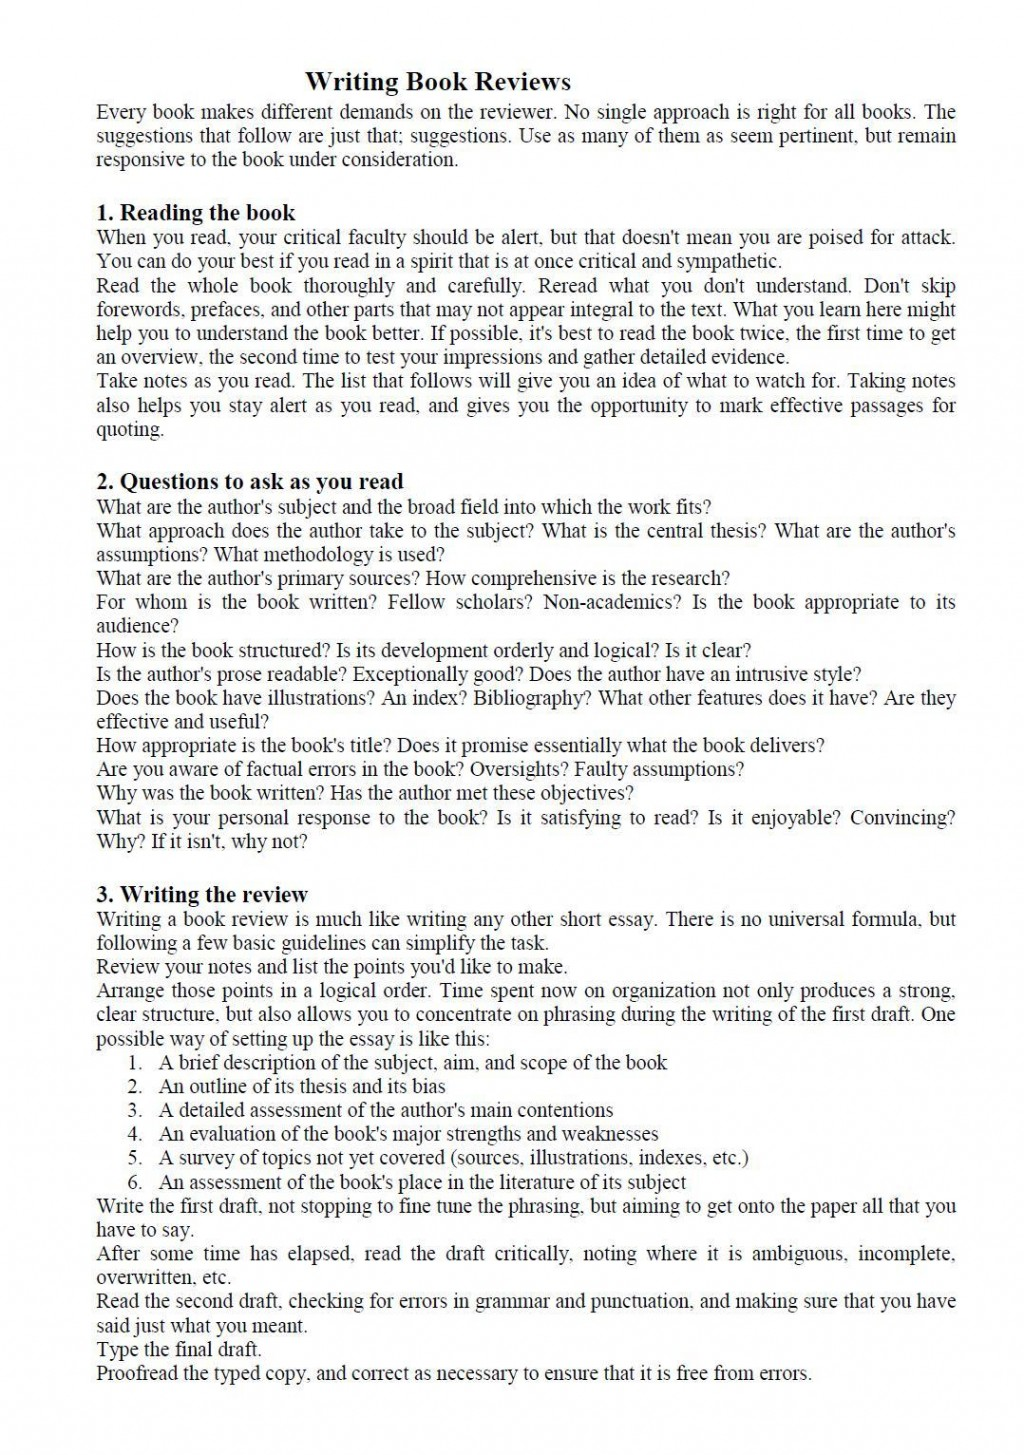 006 Essay Example How To Write Book Review Automatic Incredible Writer Free Large